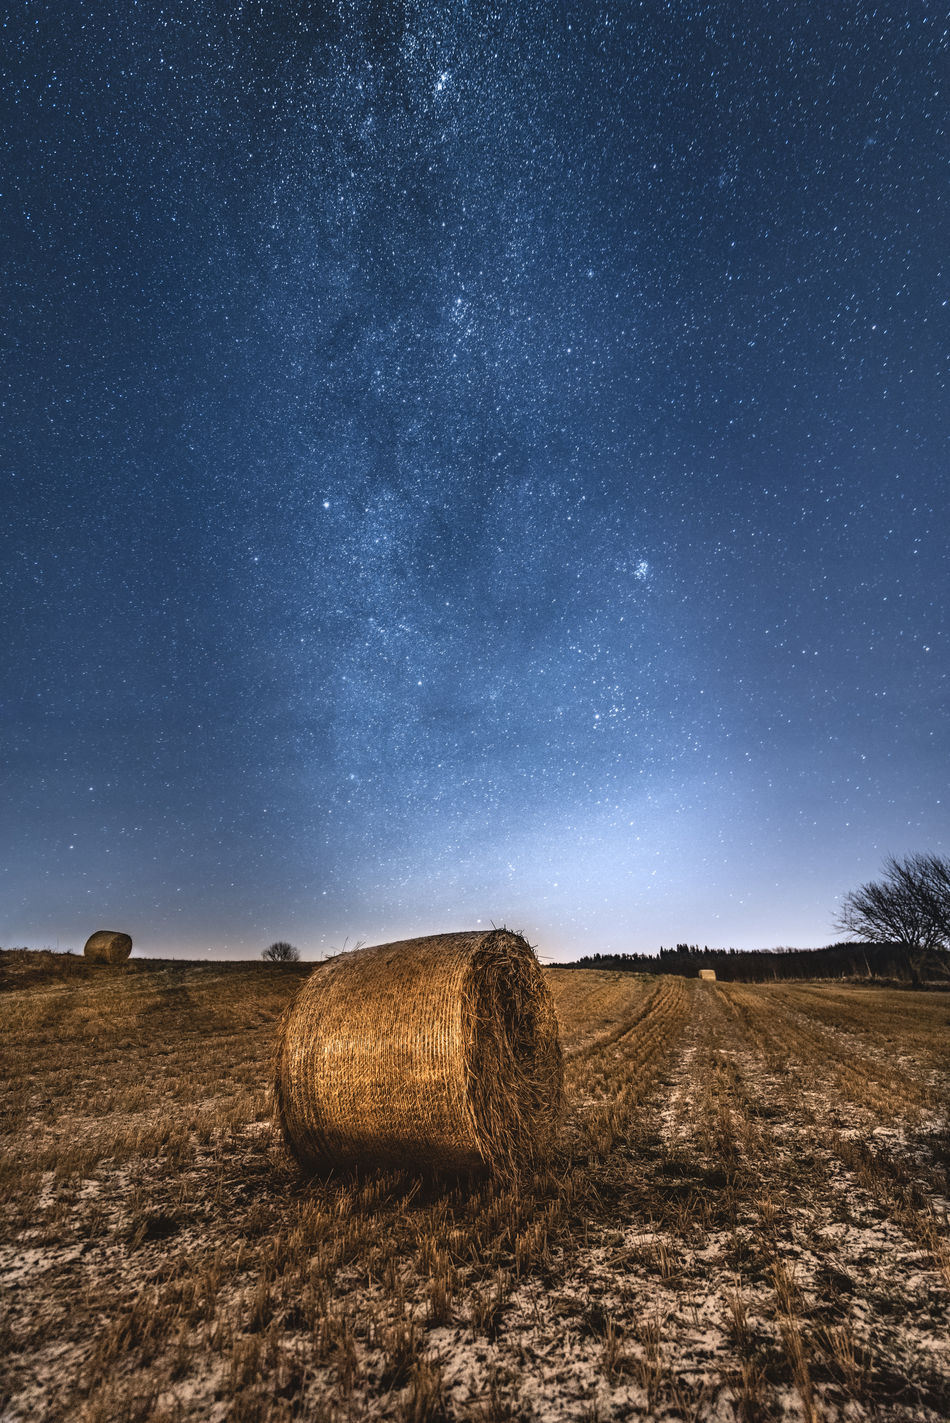 Waiting under the stars. Astronomy Bale  Beauty In Nature Blue Farming Field Galaxy Hay Landscape Milky Way Milkyway Nature Night No People Outdoors Rural Scene Sky Snow Space Space And Astronomy Star Star - Space Stars Winter